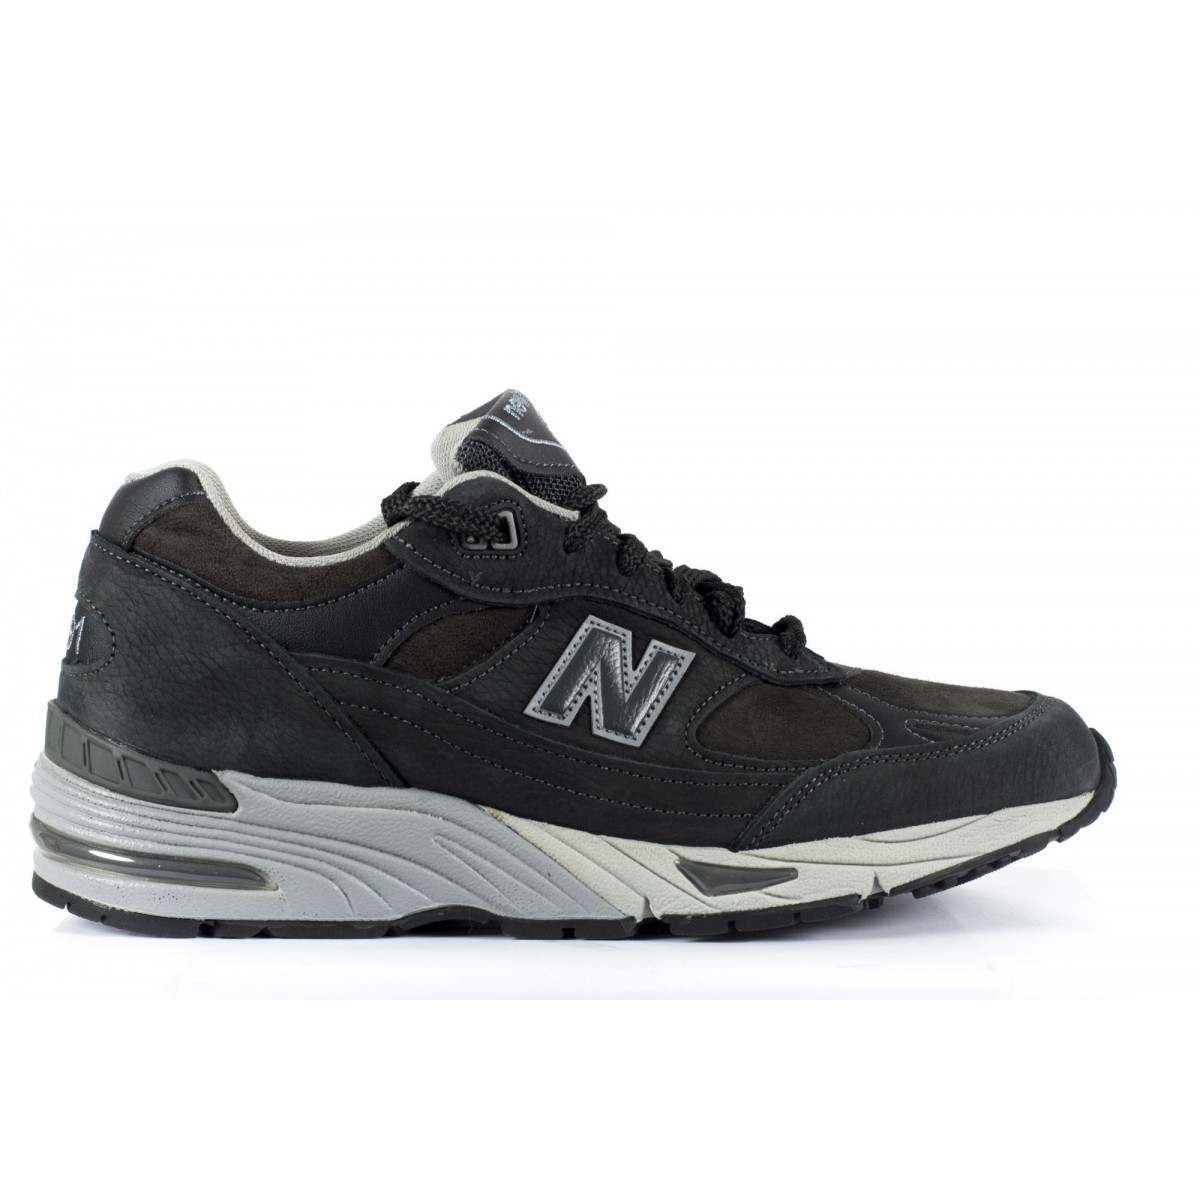 Schuhe New Balance Manner - 991 Nabuk Made In Uk NDG - Antracite